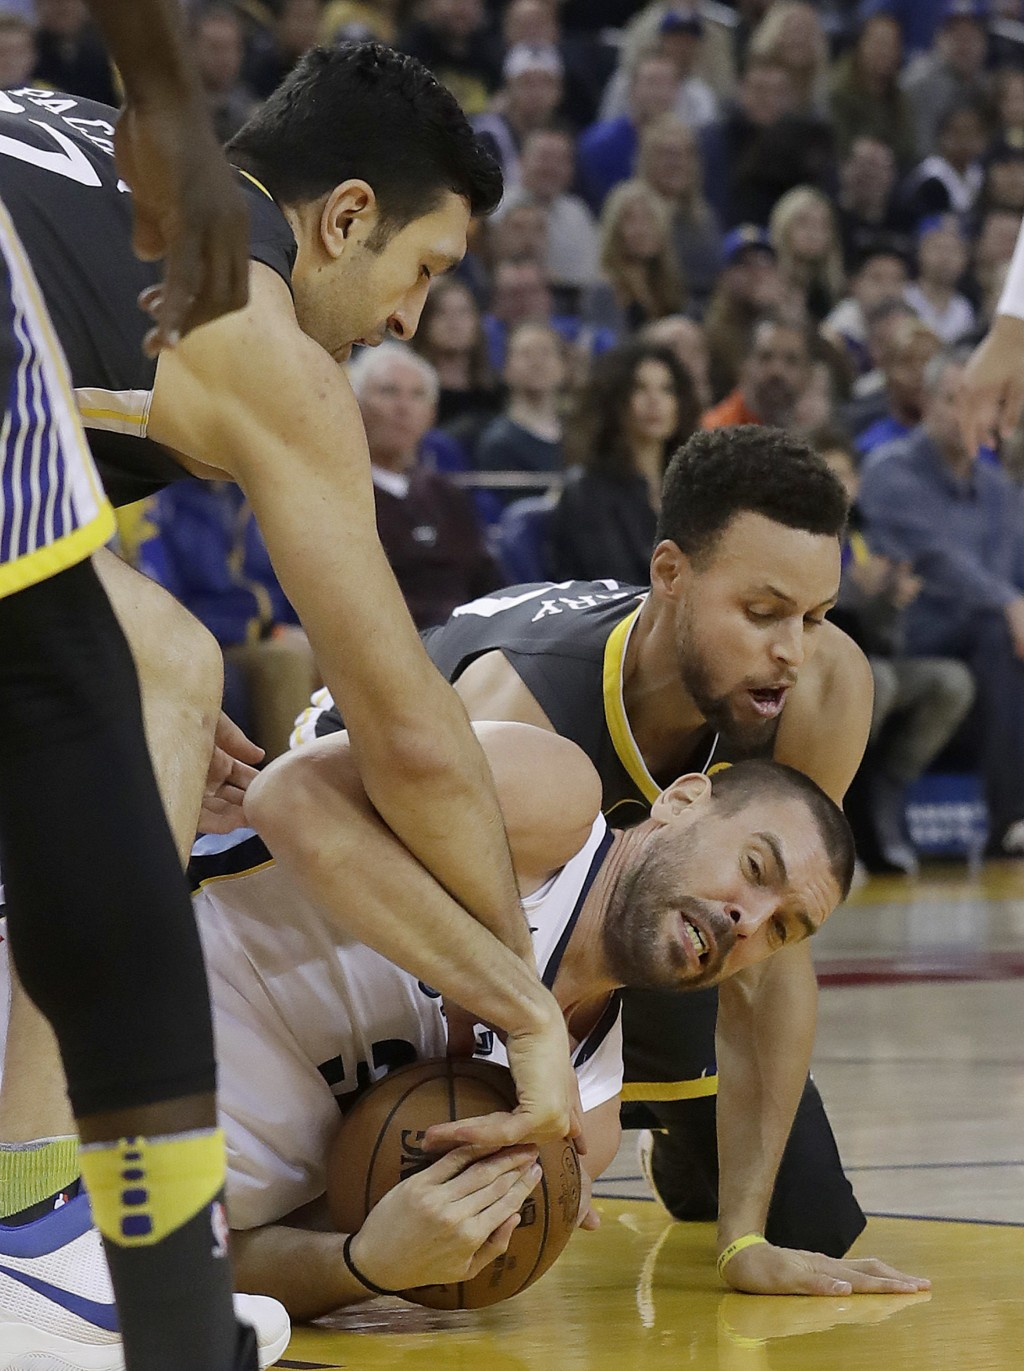 Memphis Grizzlies center Marc Gasol, bottom, tries to hold on to the ball under Golden State Warriors center Zaza Pachulia, left, and guard Stephen Cu...